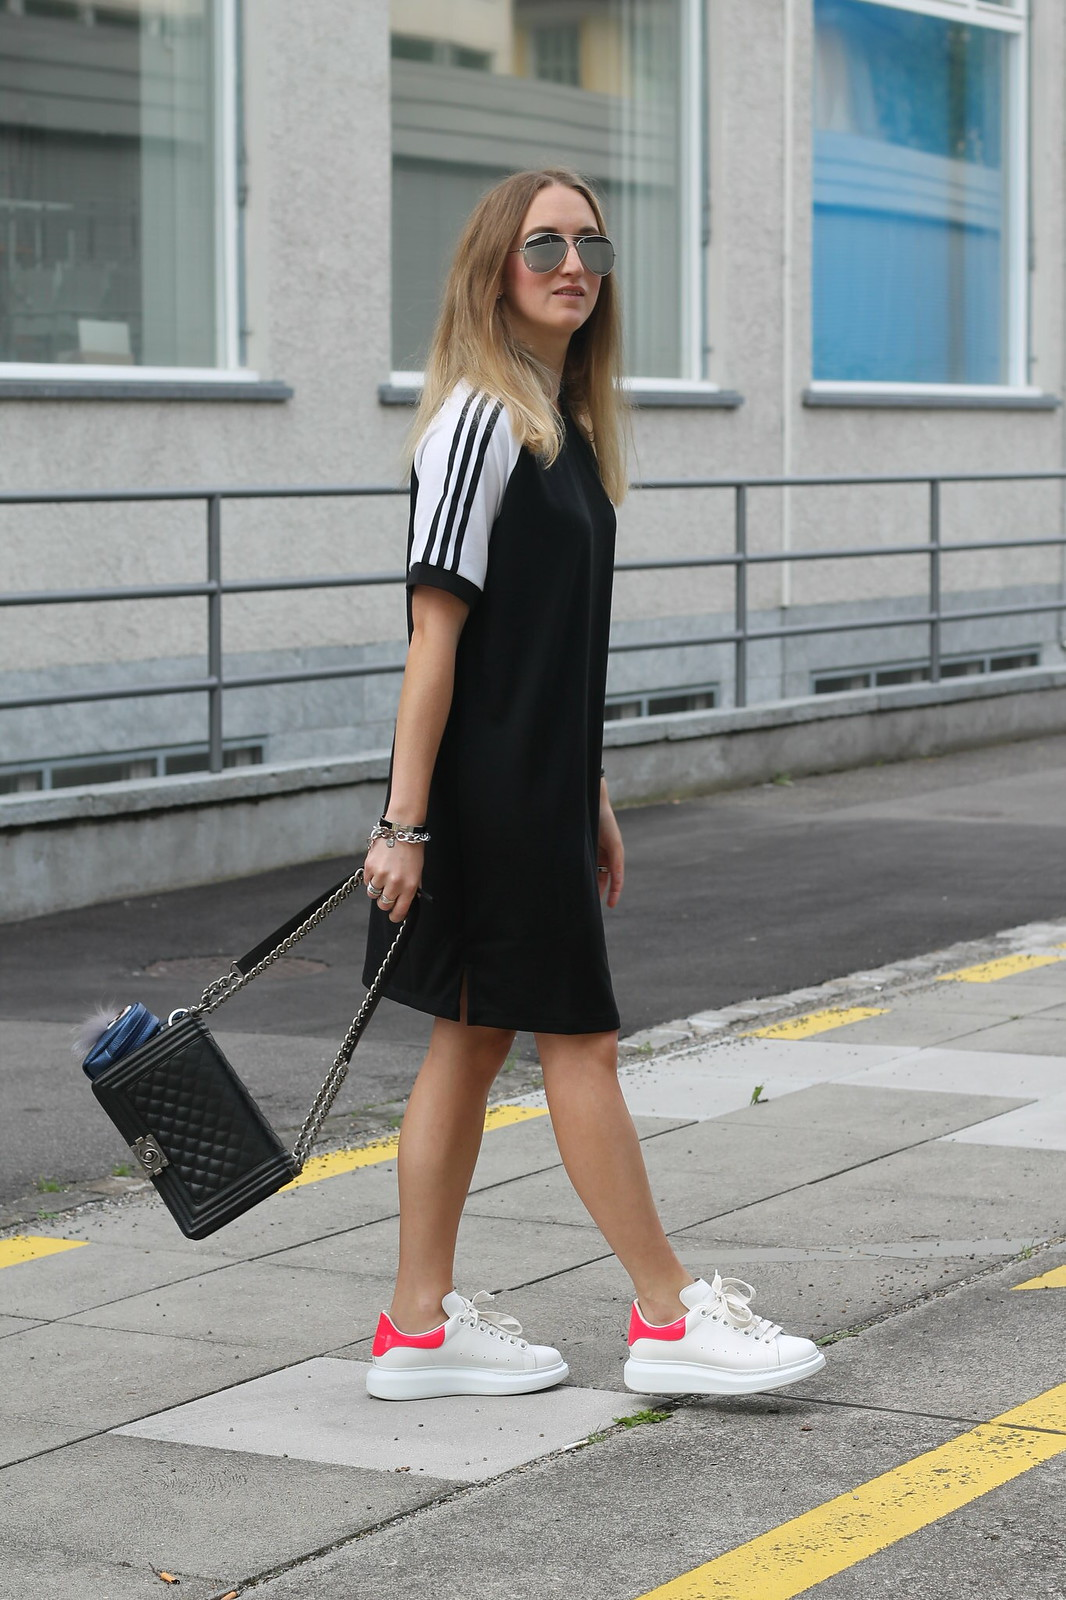 adidas-dress-and-alexander-mc-queen-sneaker-whole-look-with-sunnies-wiebkembg